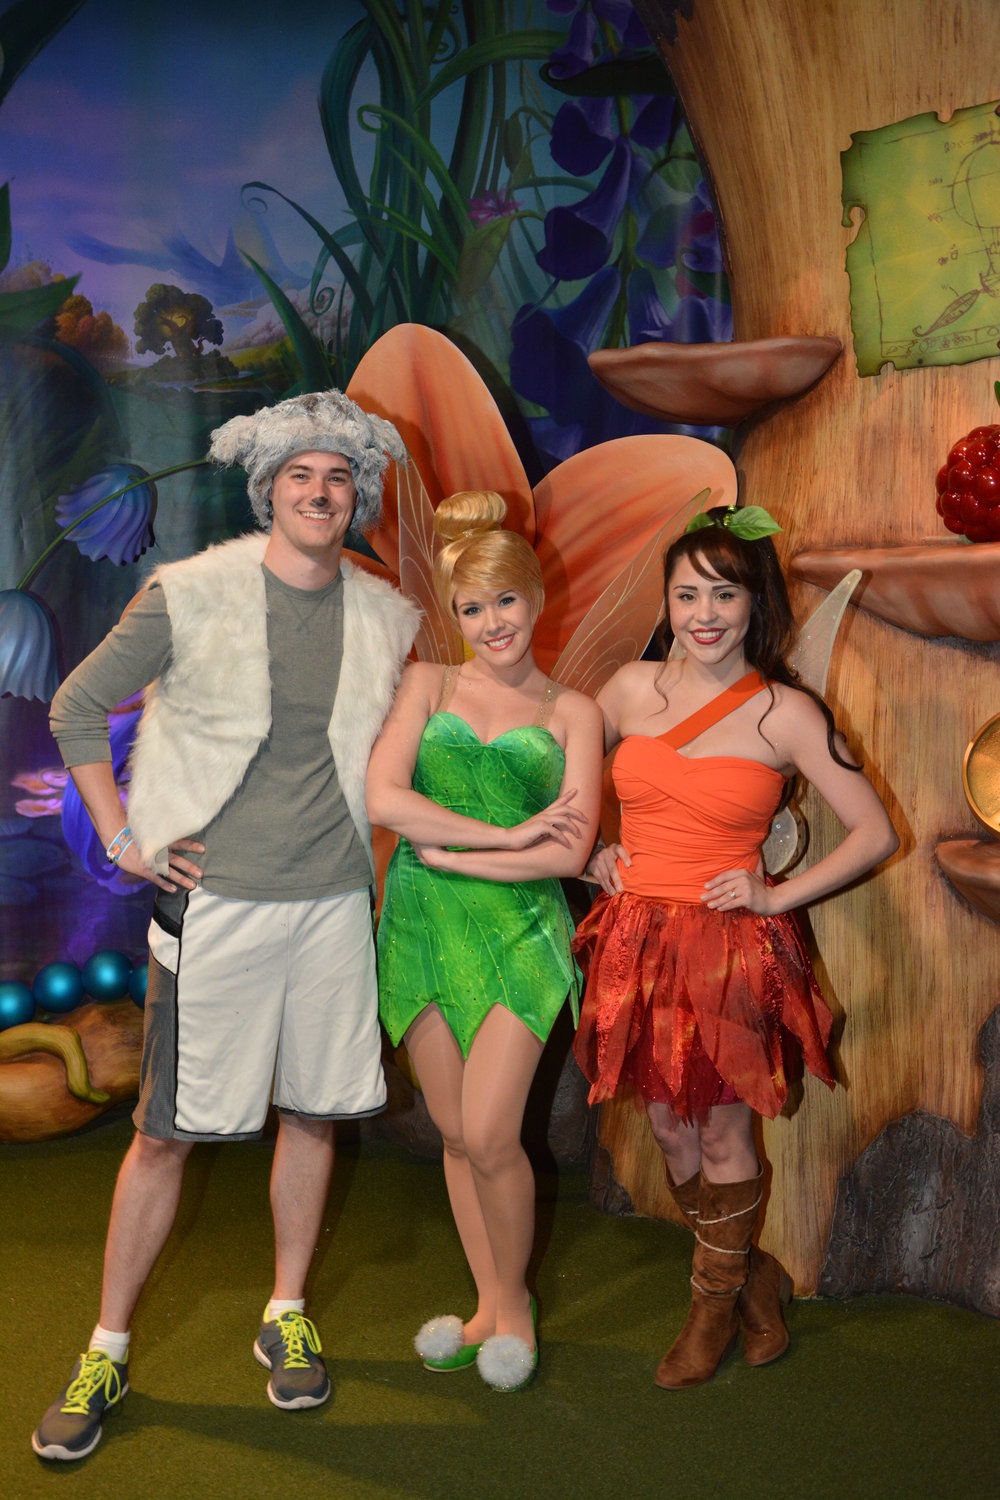 photopass_visiting_mickeys_not_so_scary_halloween_party_7465622761-1.jpg